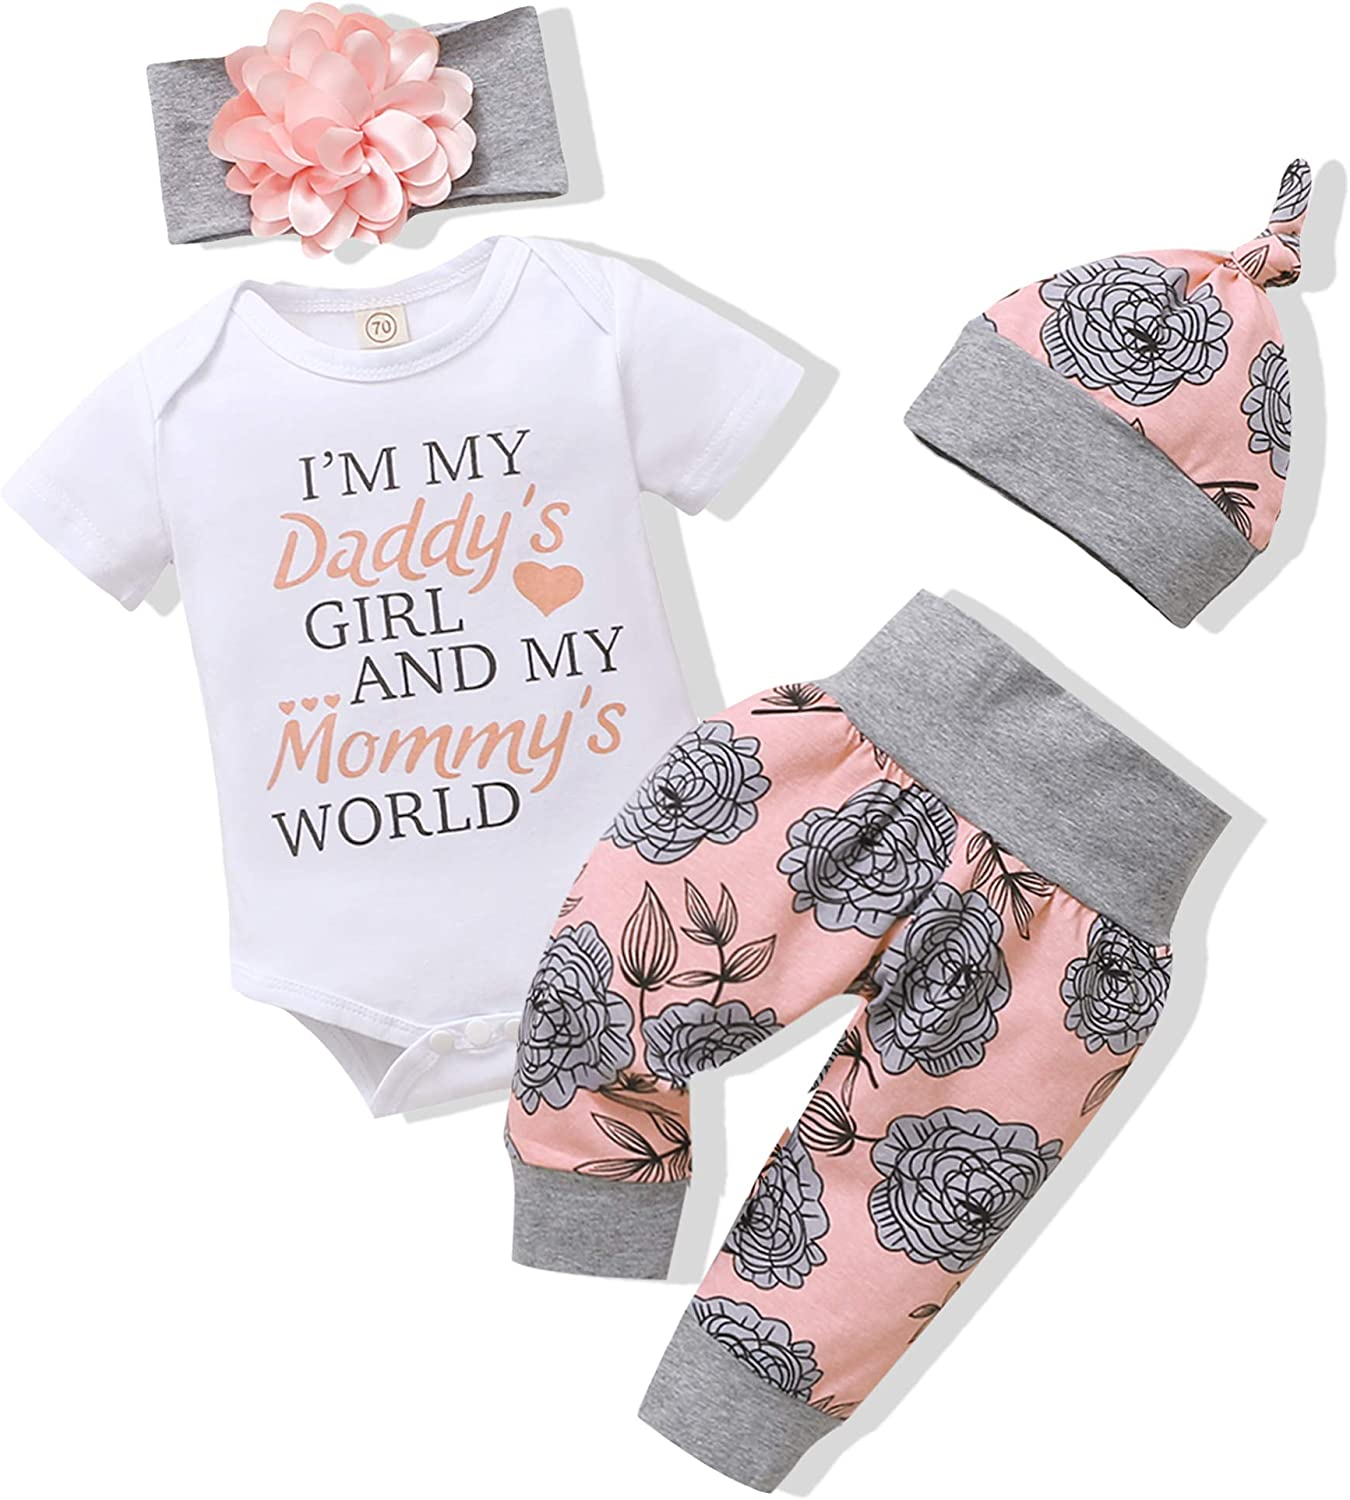 Renotemy Newborn Infant Baby Girl Clothes Summer Outfits Infant Romper Pants Cute Toddler Baby Girl Clothes Set